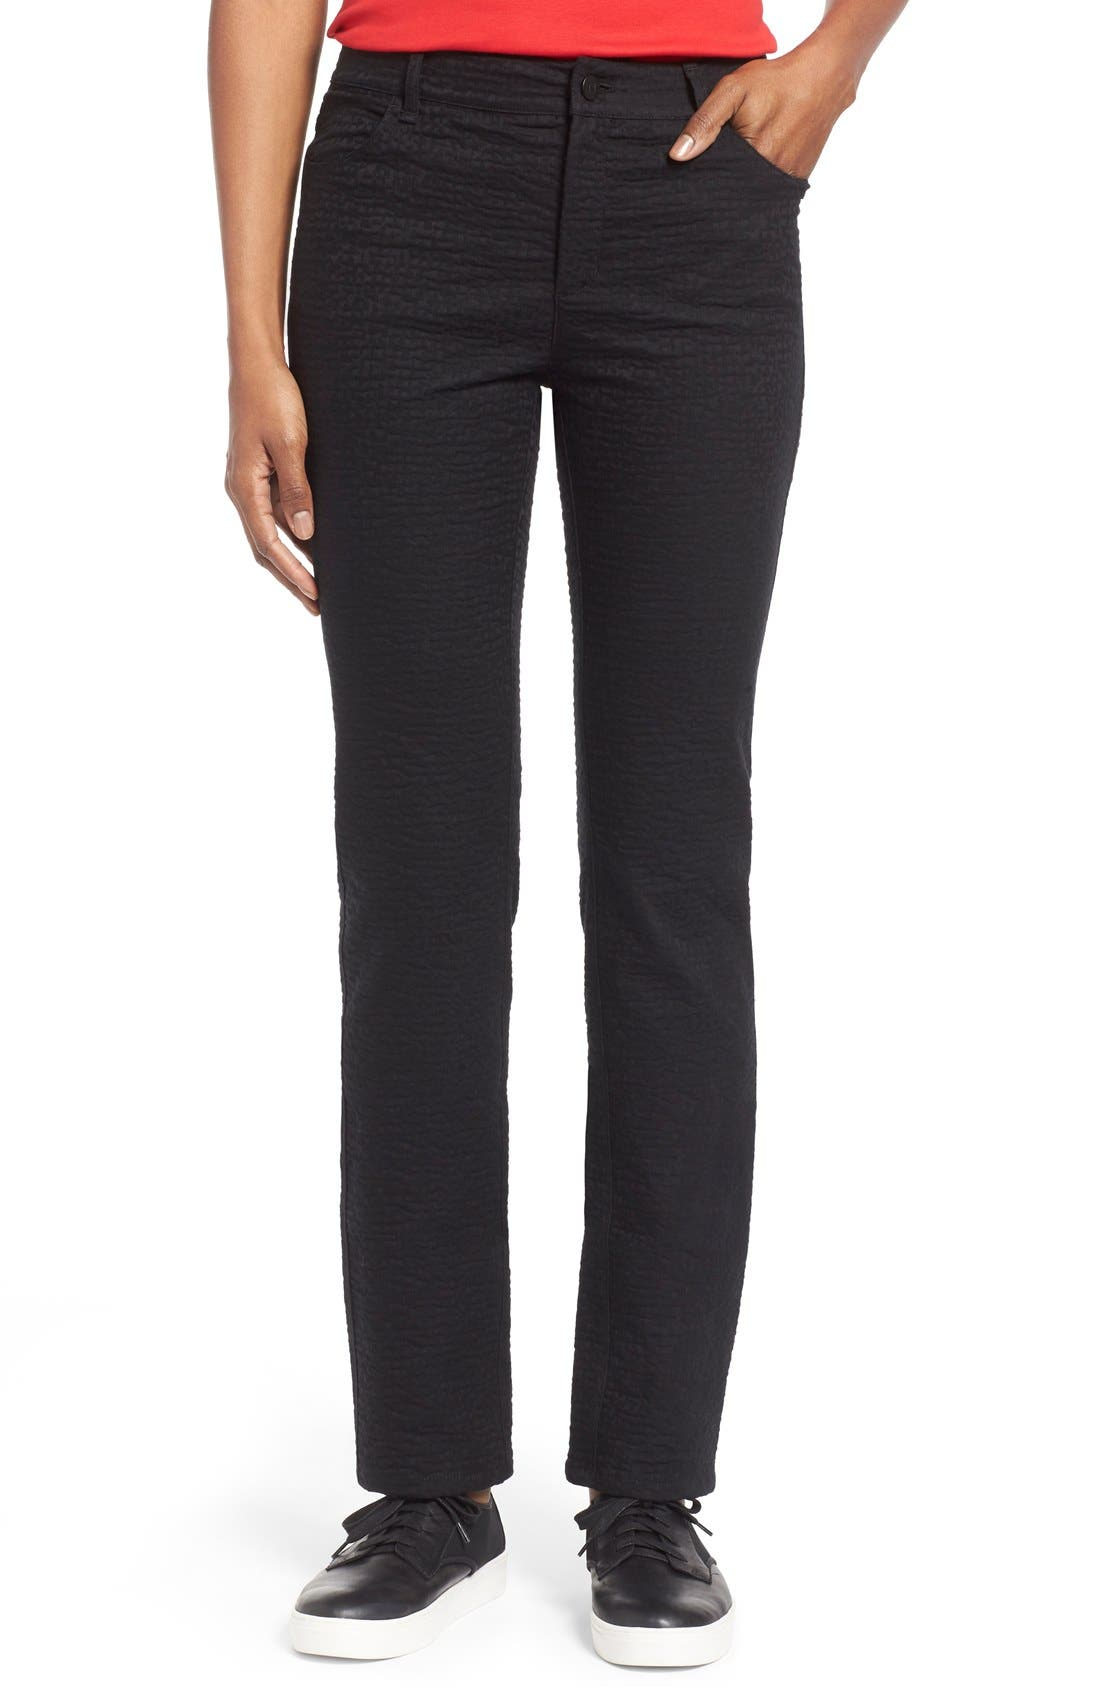 LAFAYETTE 148 NEW YORK Curvy Fit Jacquard Stretch